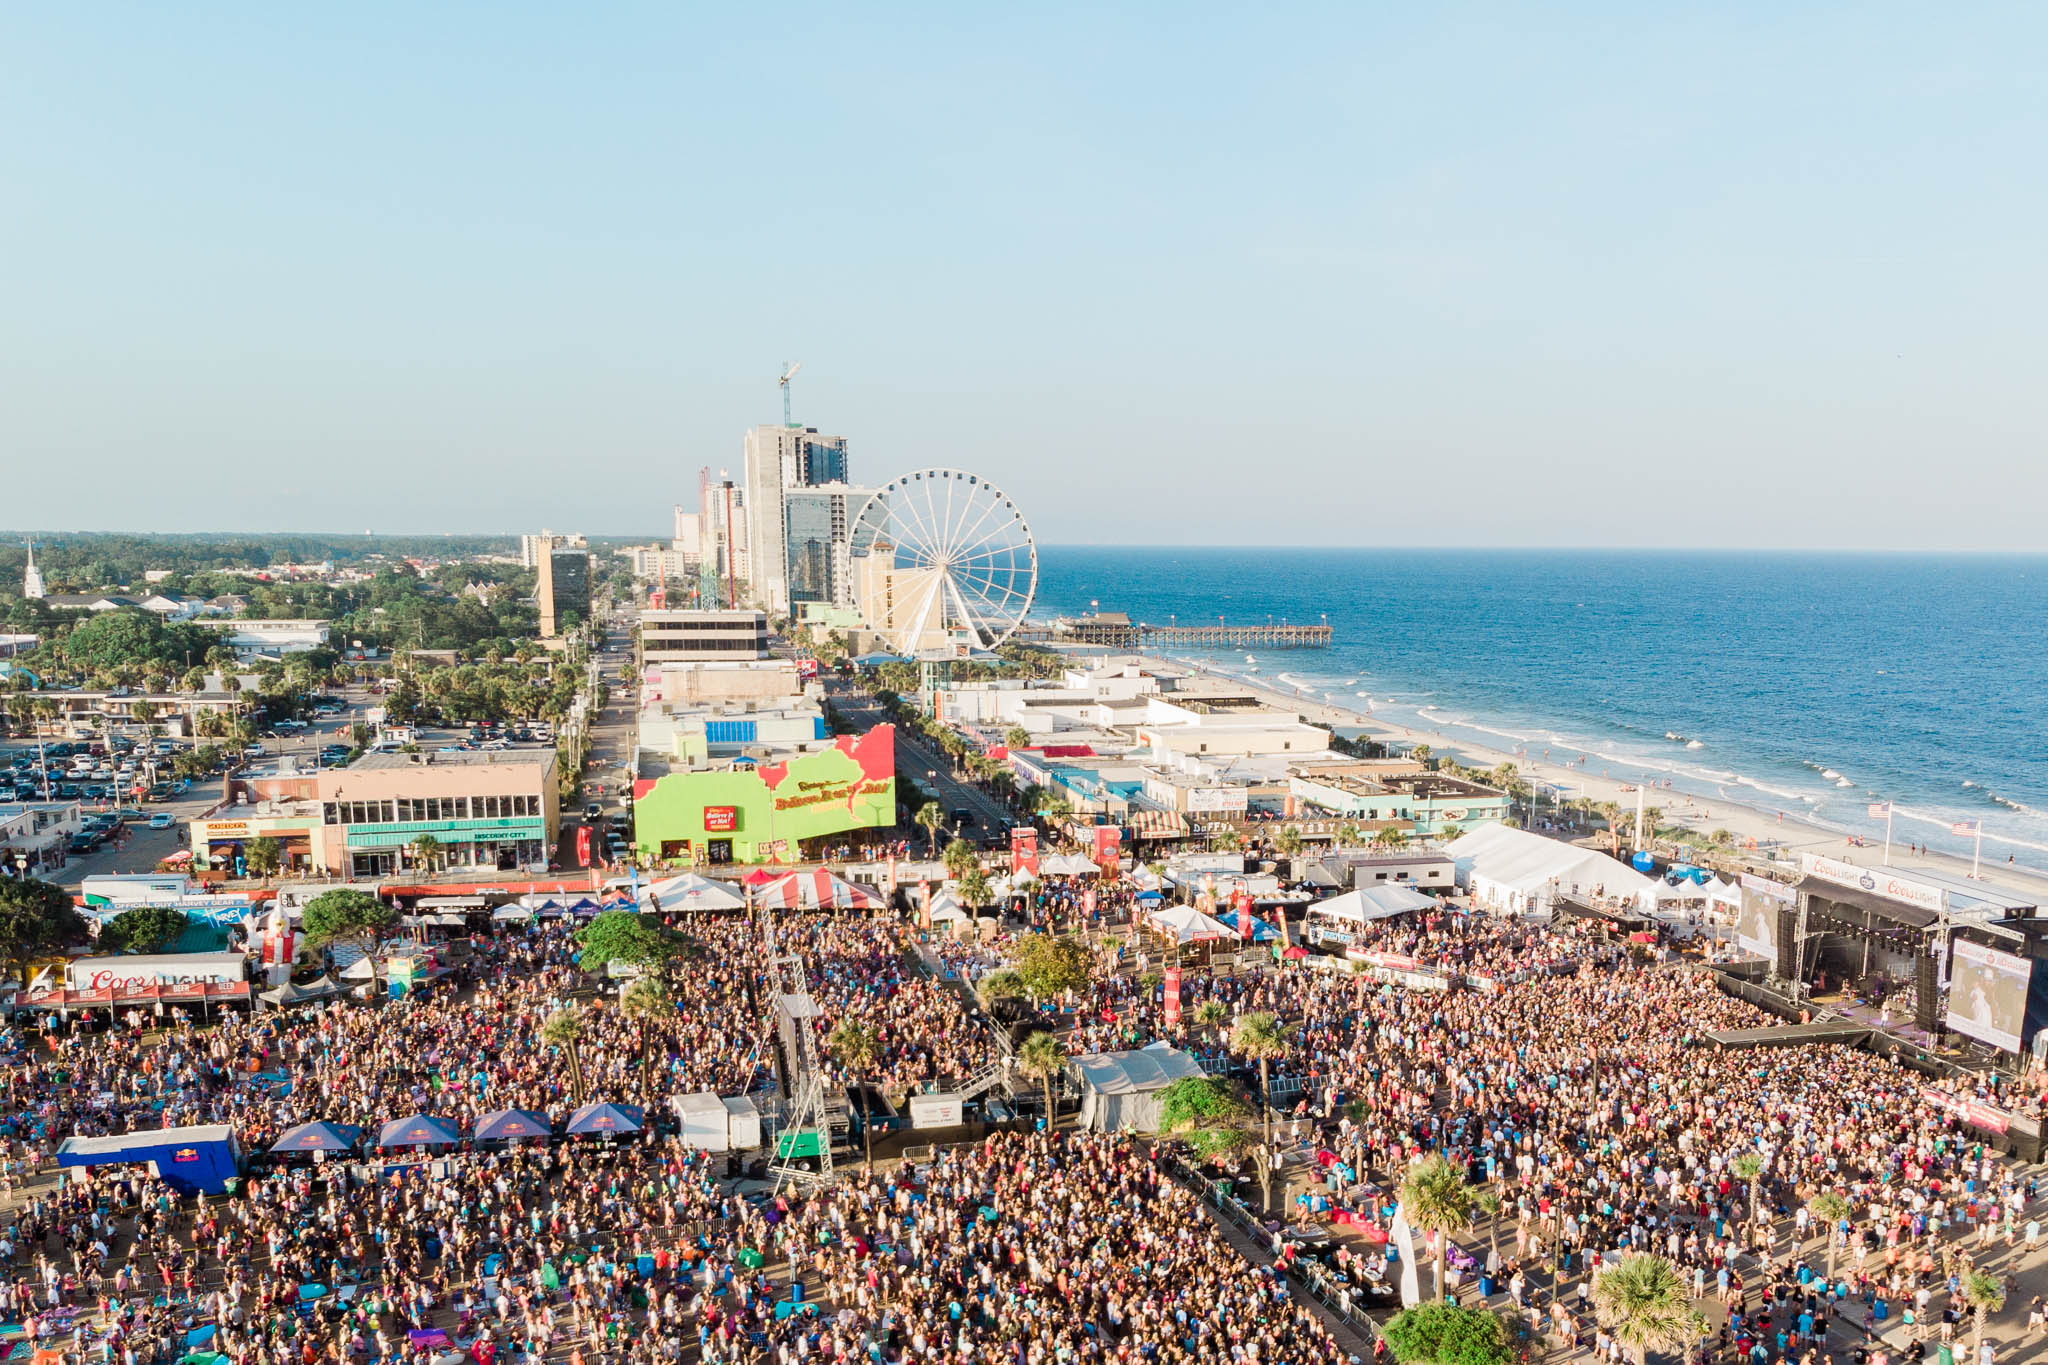 2018's CCMF attracted 113,000 fans to its oceanfront stage. The festival has grown each year and celebrates its fifth anniversary in 2019.